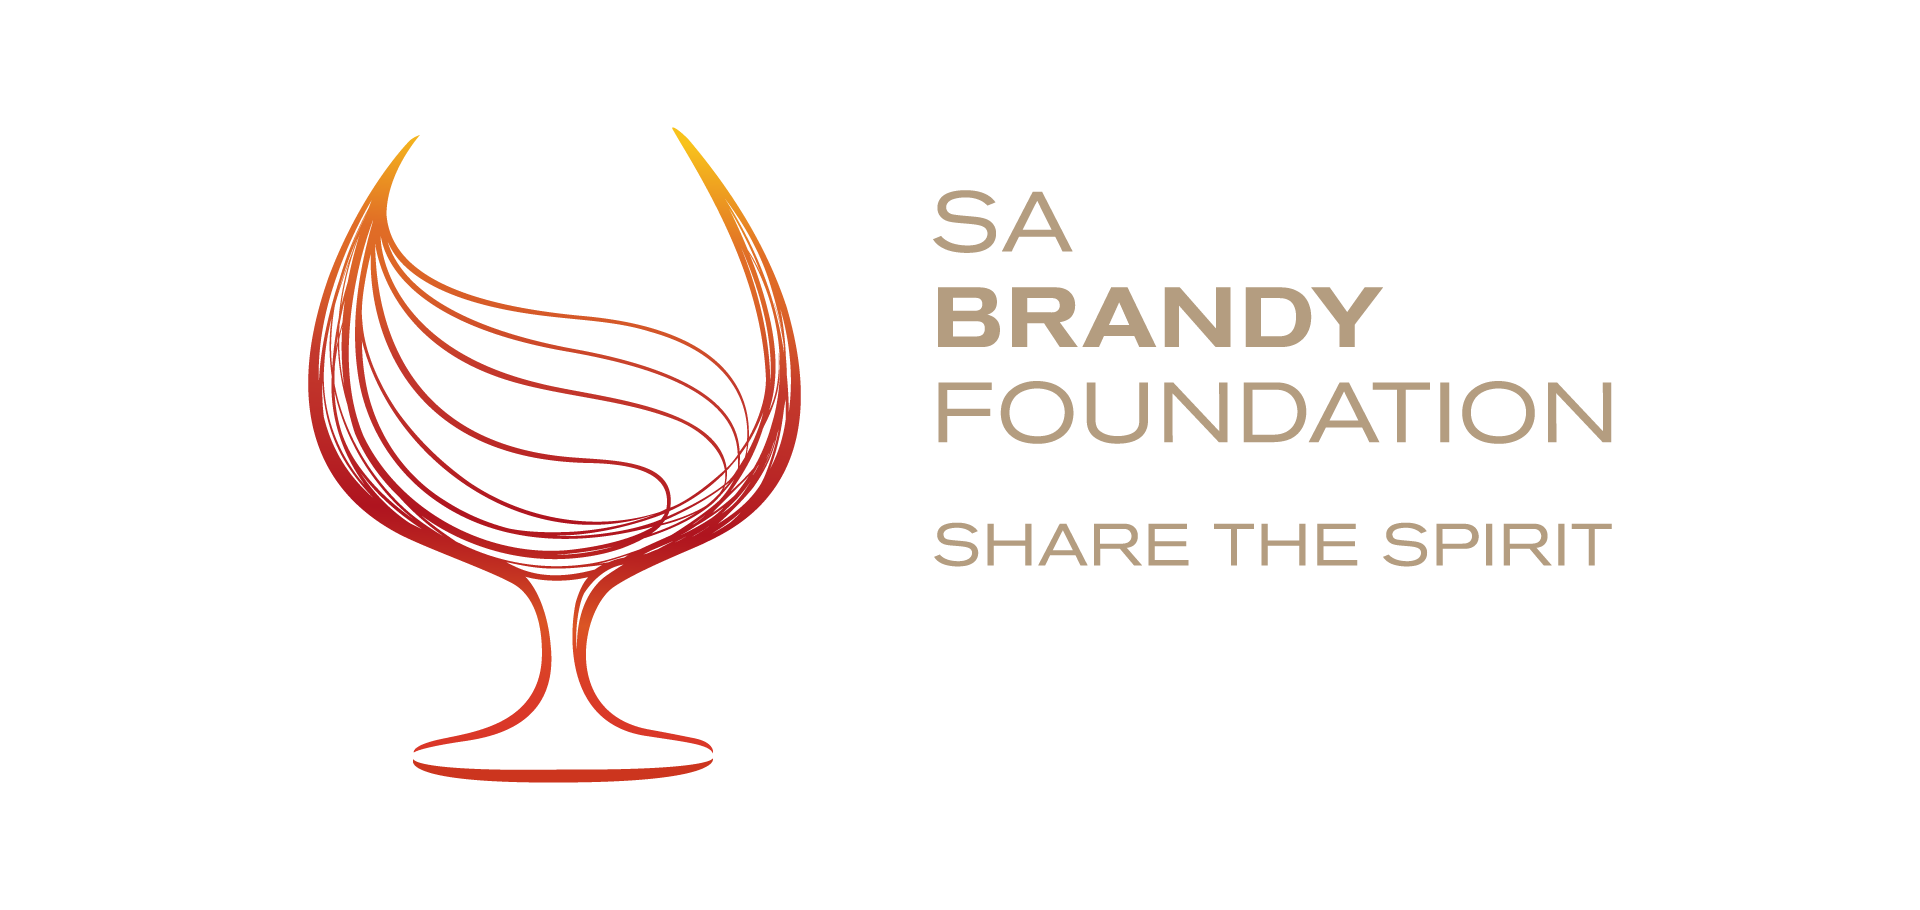 SA BRANDY FOUNDATION